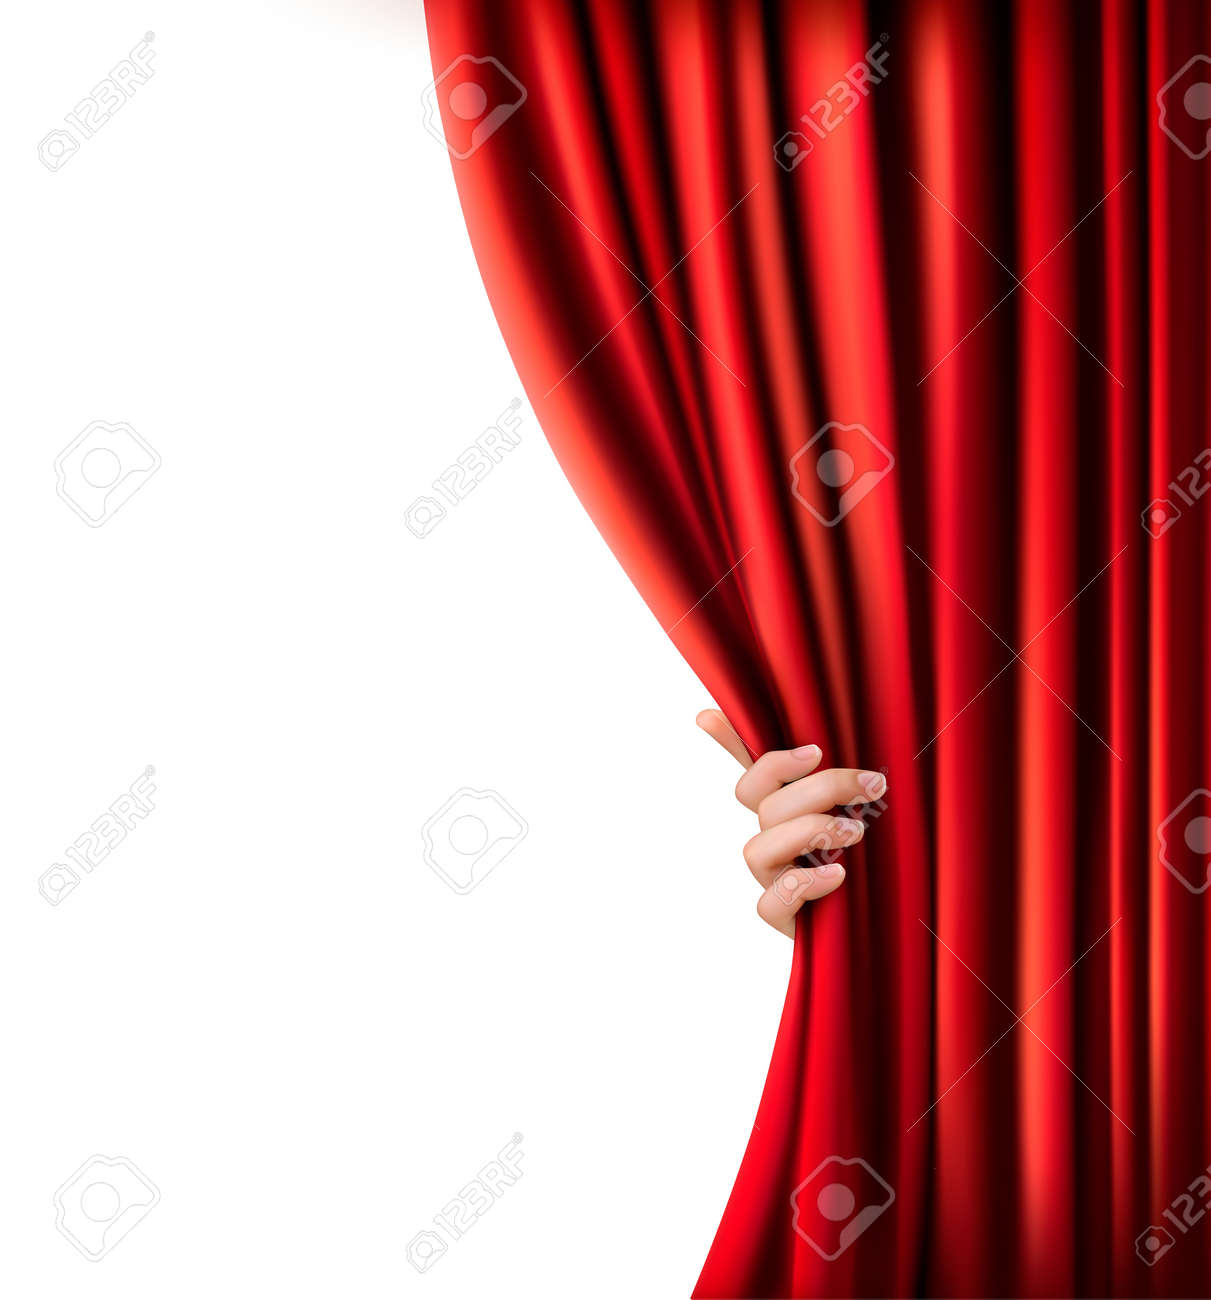 Creative vector illustration of stage with luxury scarlet red silk velvet  drapes and fabric curtains isolated on background. Art design. Concept  element for music party, theater, circus, opera, show Clip Art |